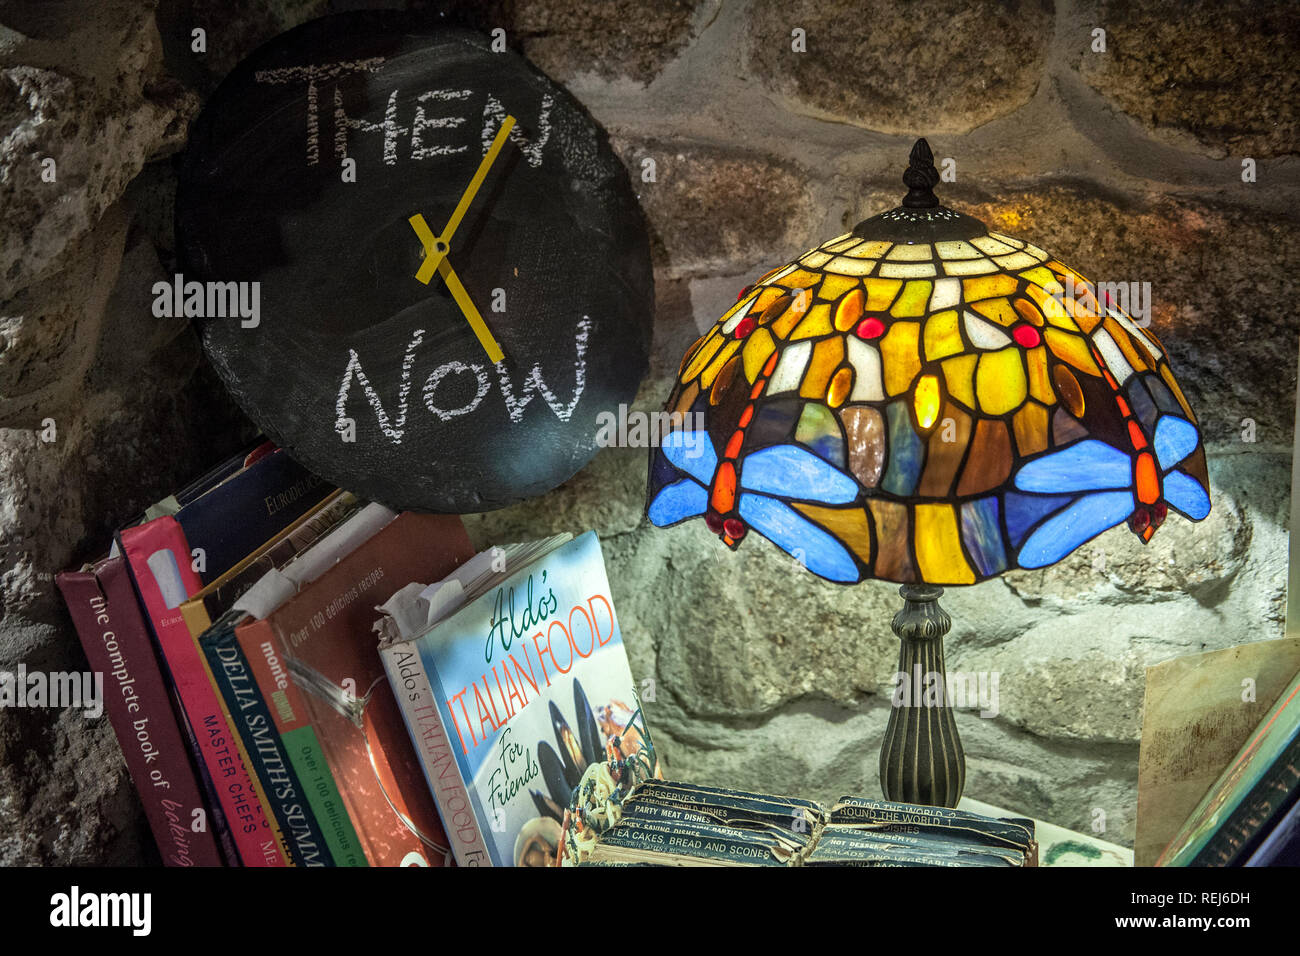 domestic kitchen scene, cook books,Tiffany Reproduction Stained Glass Lamp Shade table lamp, slate face clock, Then and now written in chalk - Stock Image